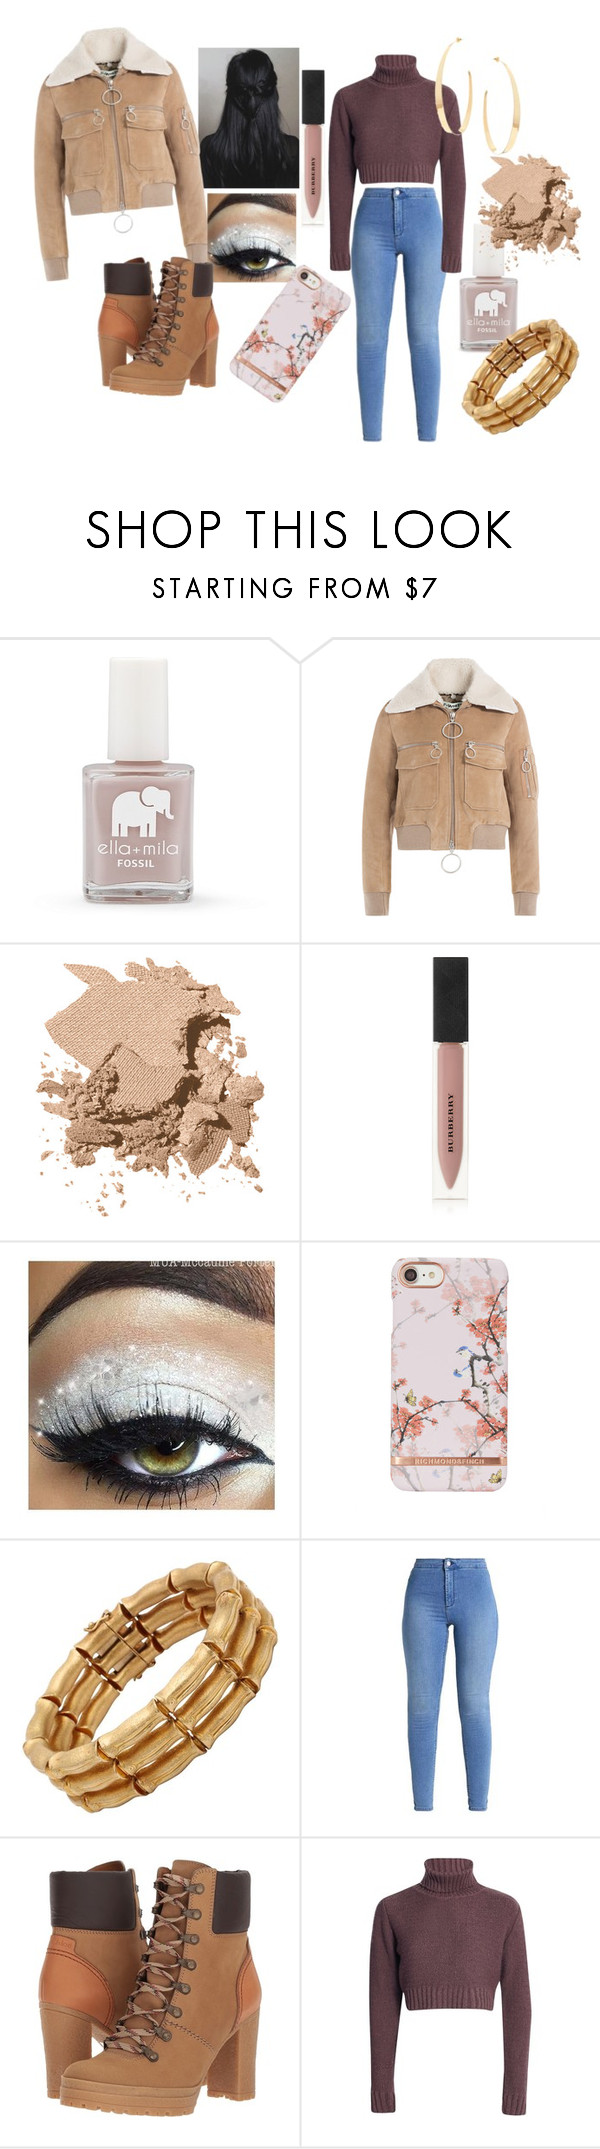 """Viola"" by jojohanakana on Polyvore featuring FOSSIL, Off-White, Bobbi Brown Cosmetics, Burberry, See by Chloé, Lana, pretty and polyvorefashion"